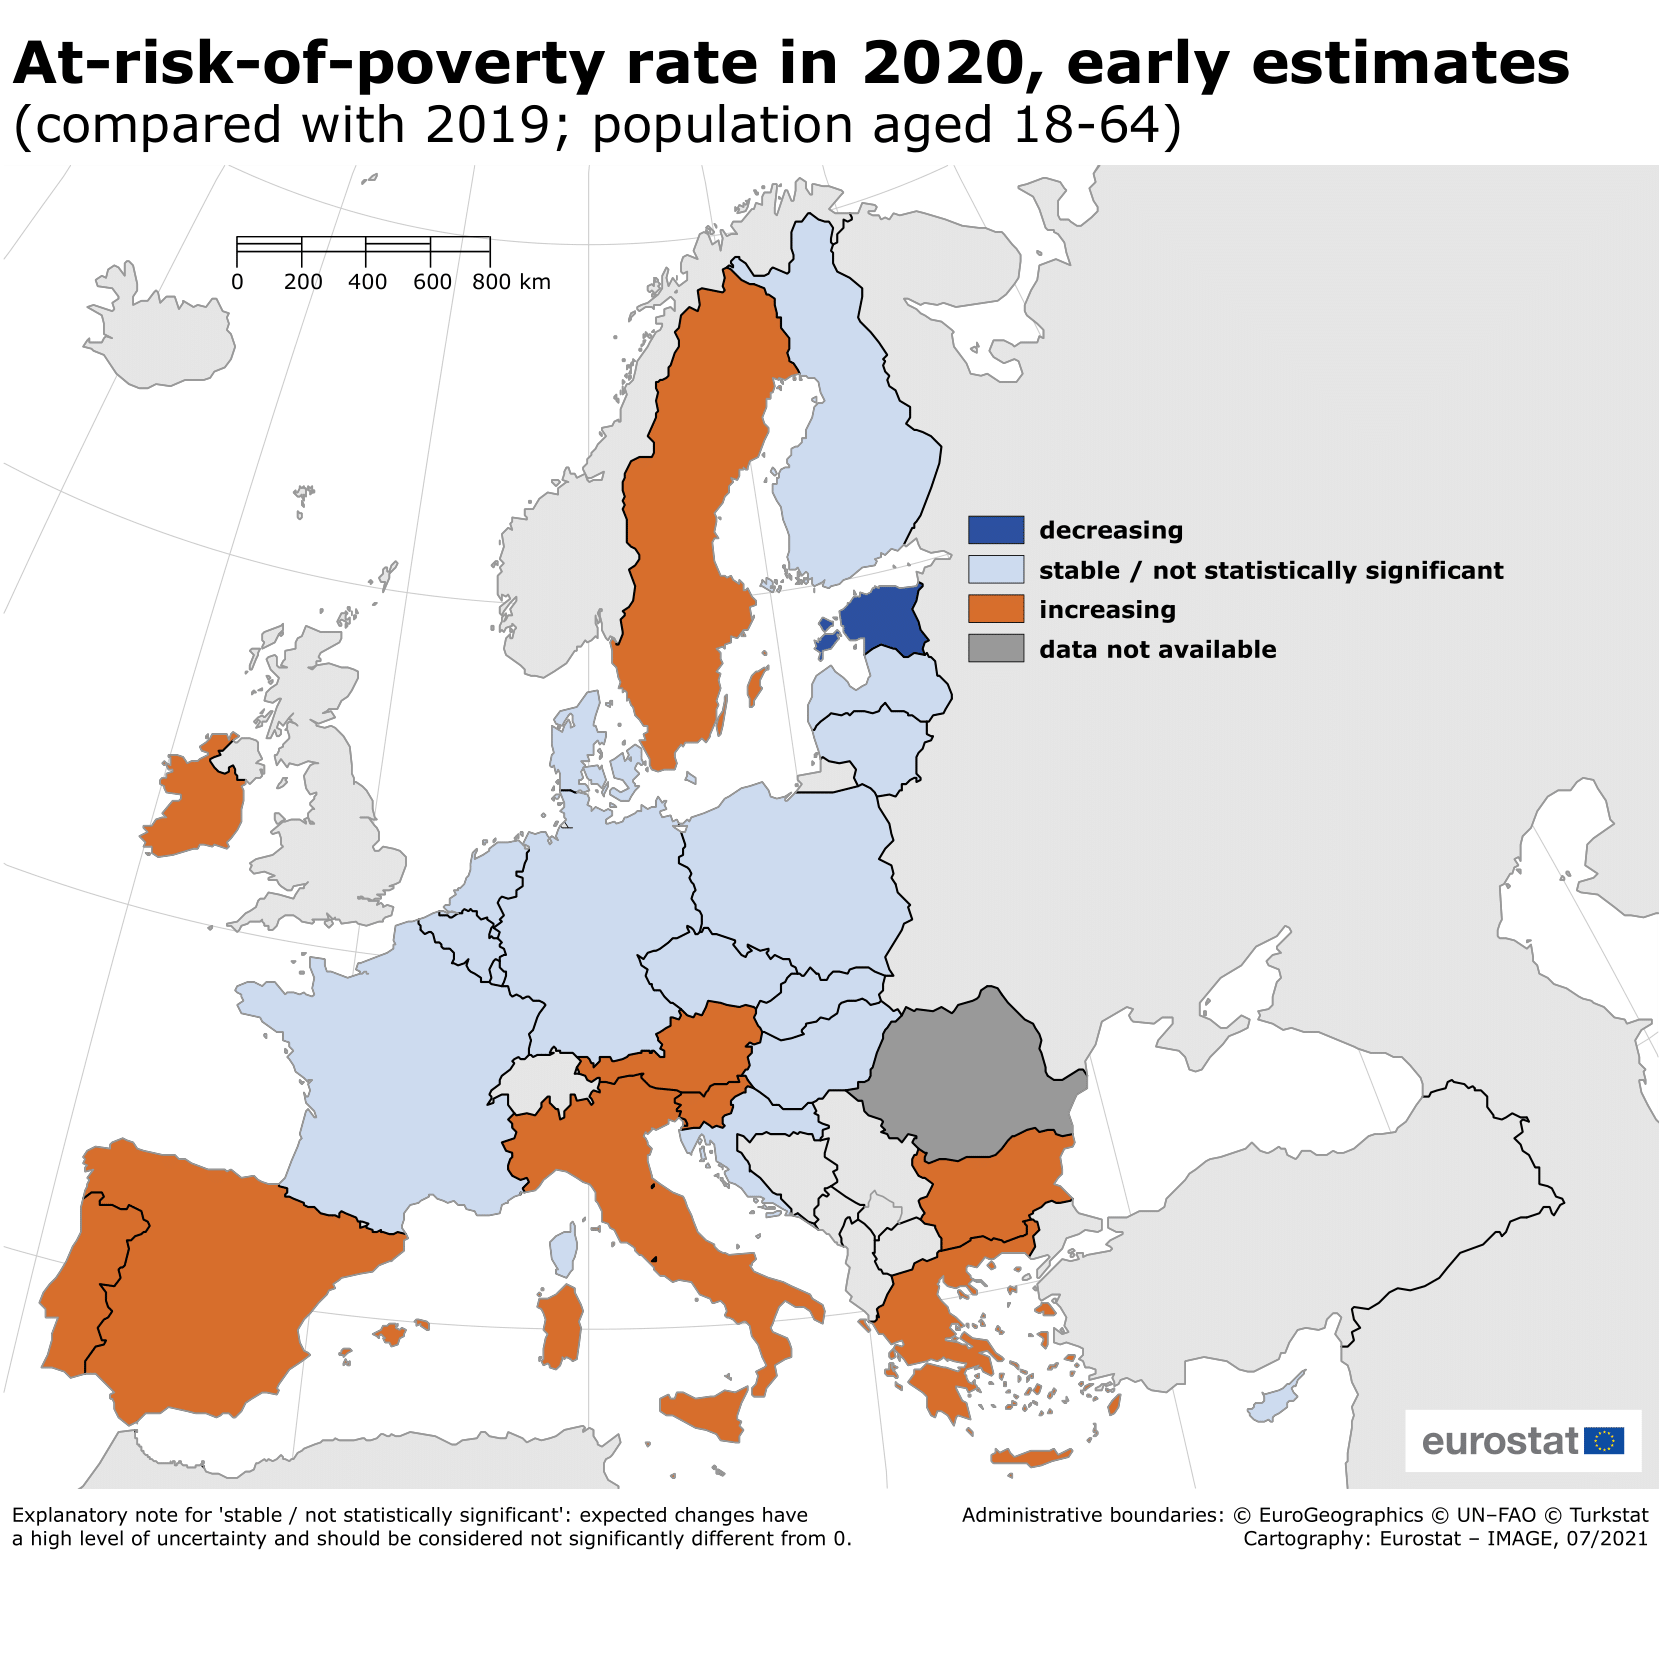 At-risk-of-poverty rate in the EU Member States, 2020 compared with 2019